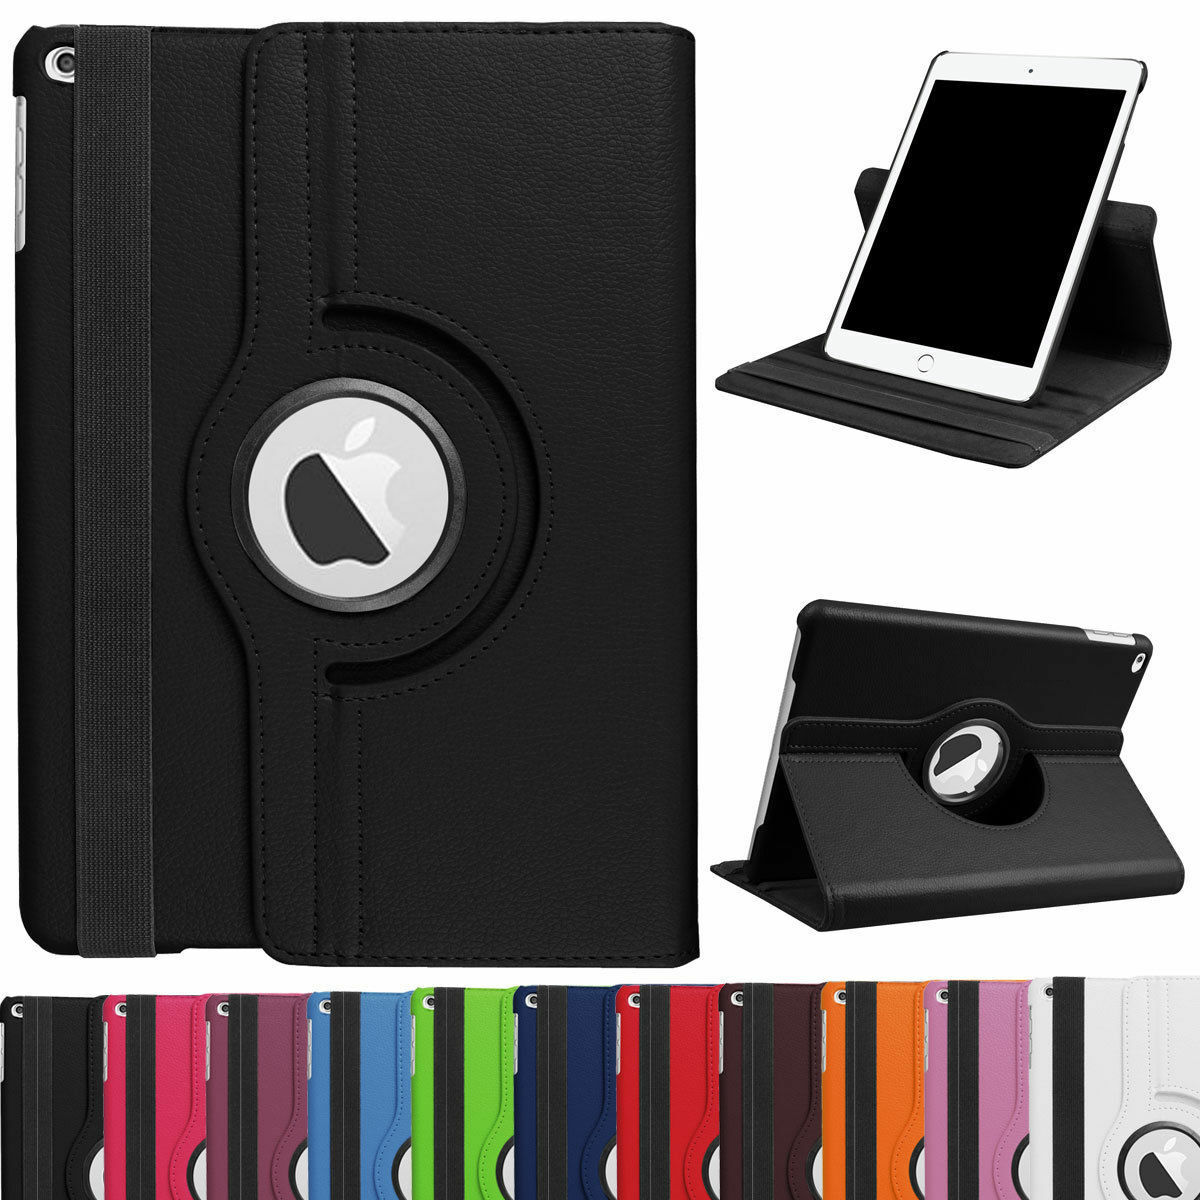 360° Rotating Shockproof Leather Flip Smart Stand Case Cover Fr iPad 9.7 6th Gen 7